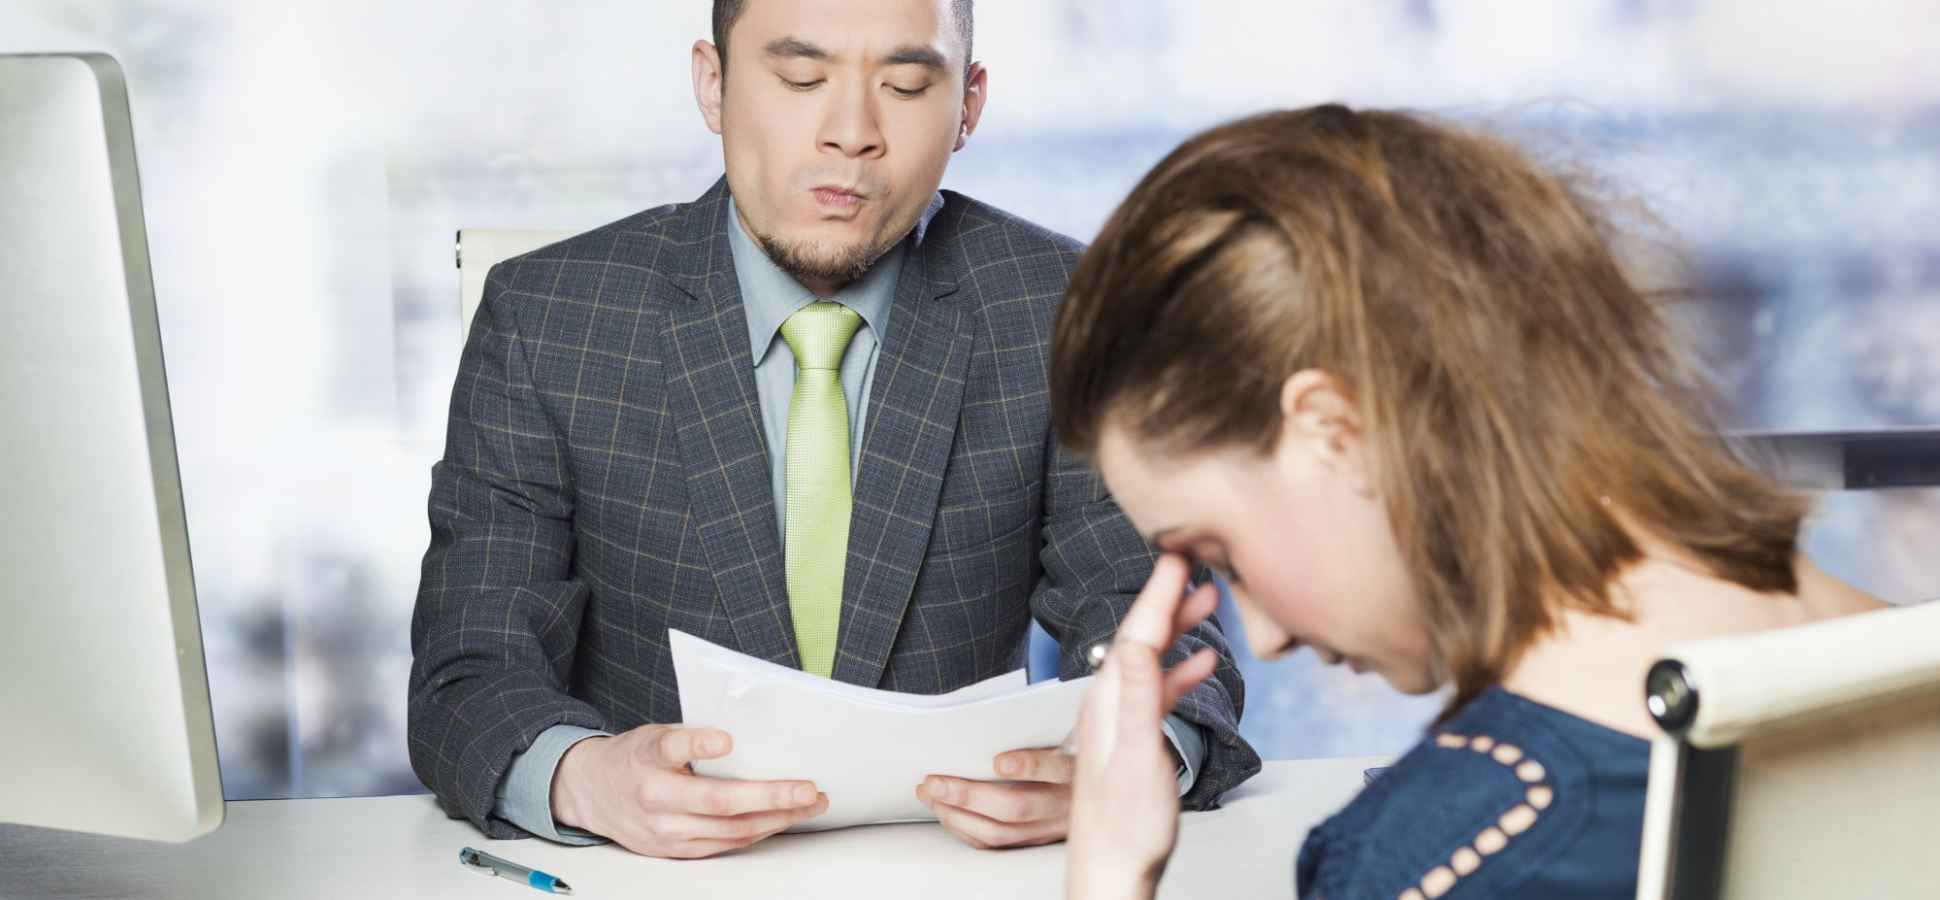 The Best Advice I Ever Got About Firing Bad Employees